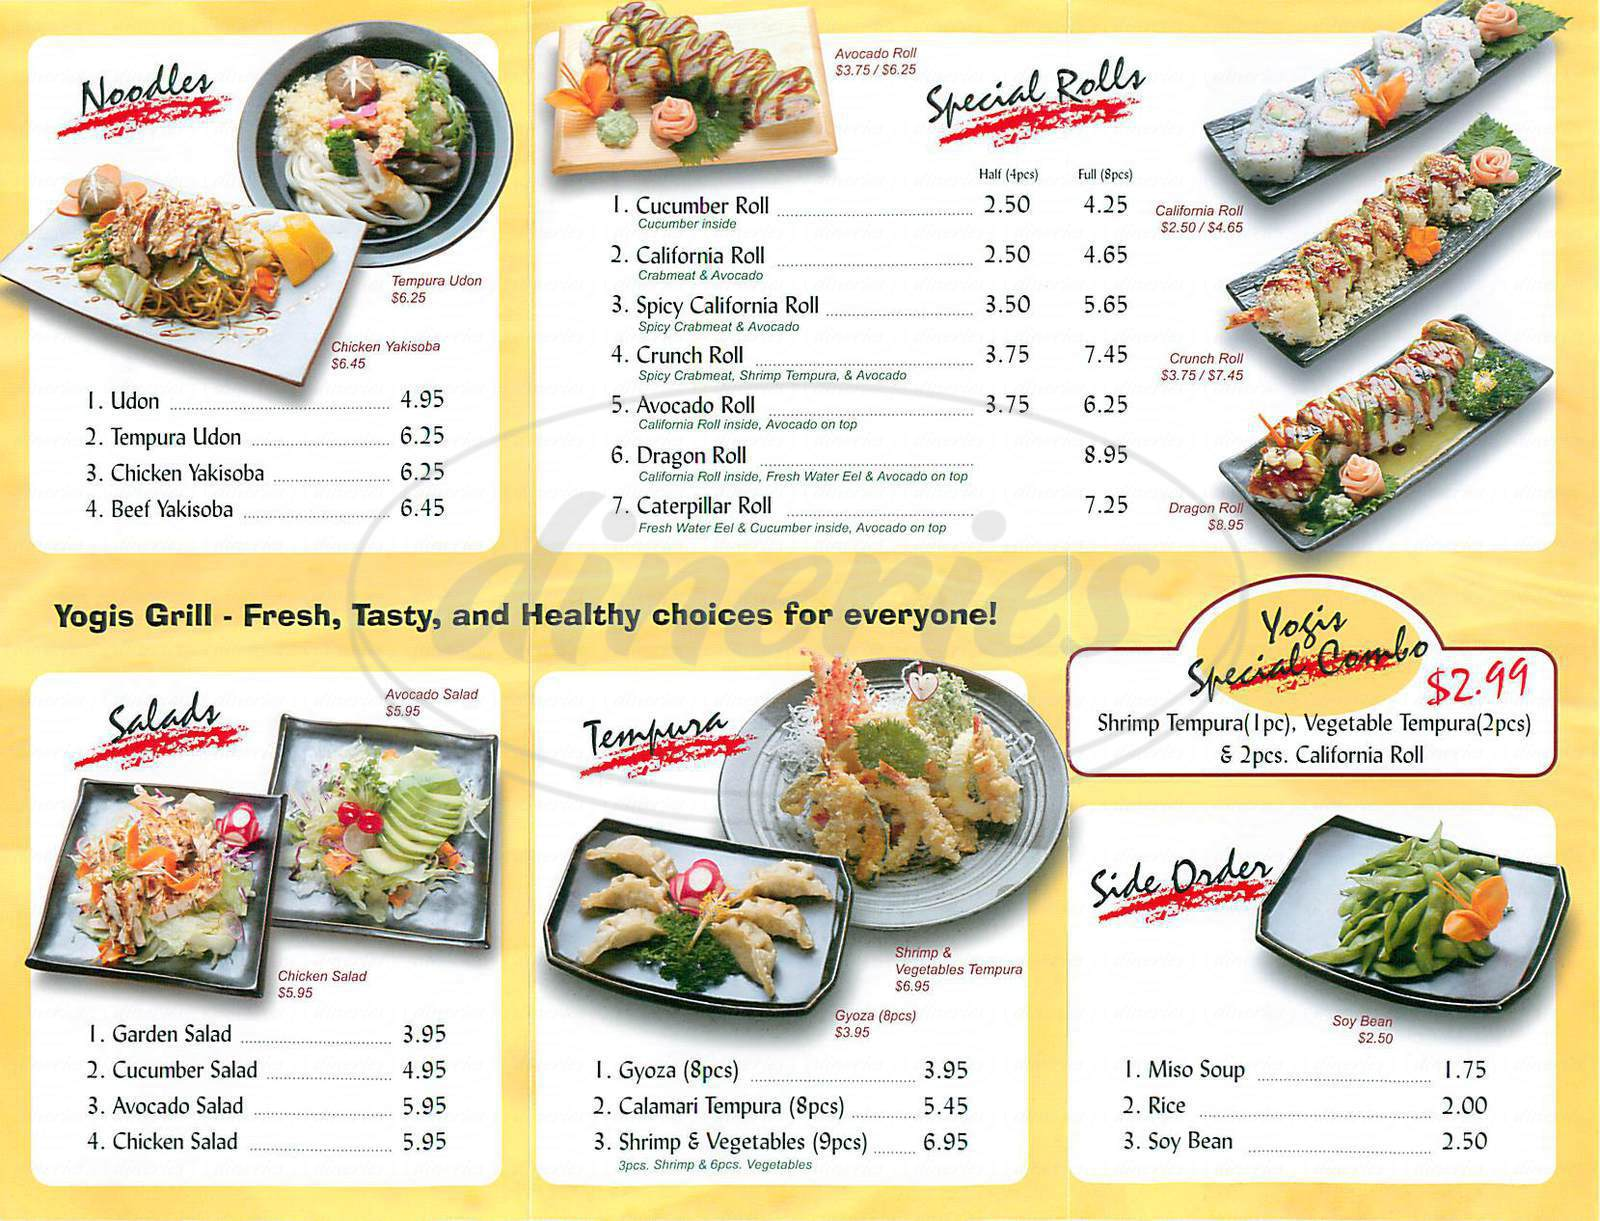 menu for Yogis Grill